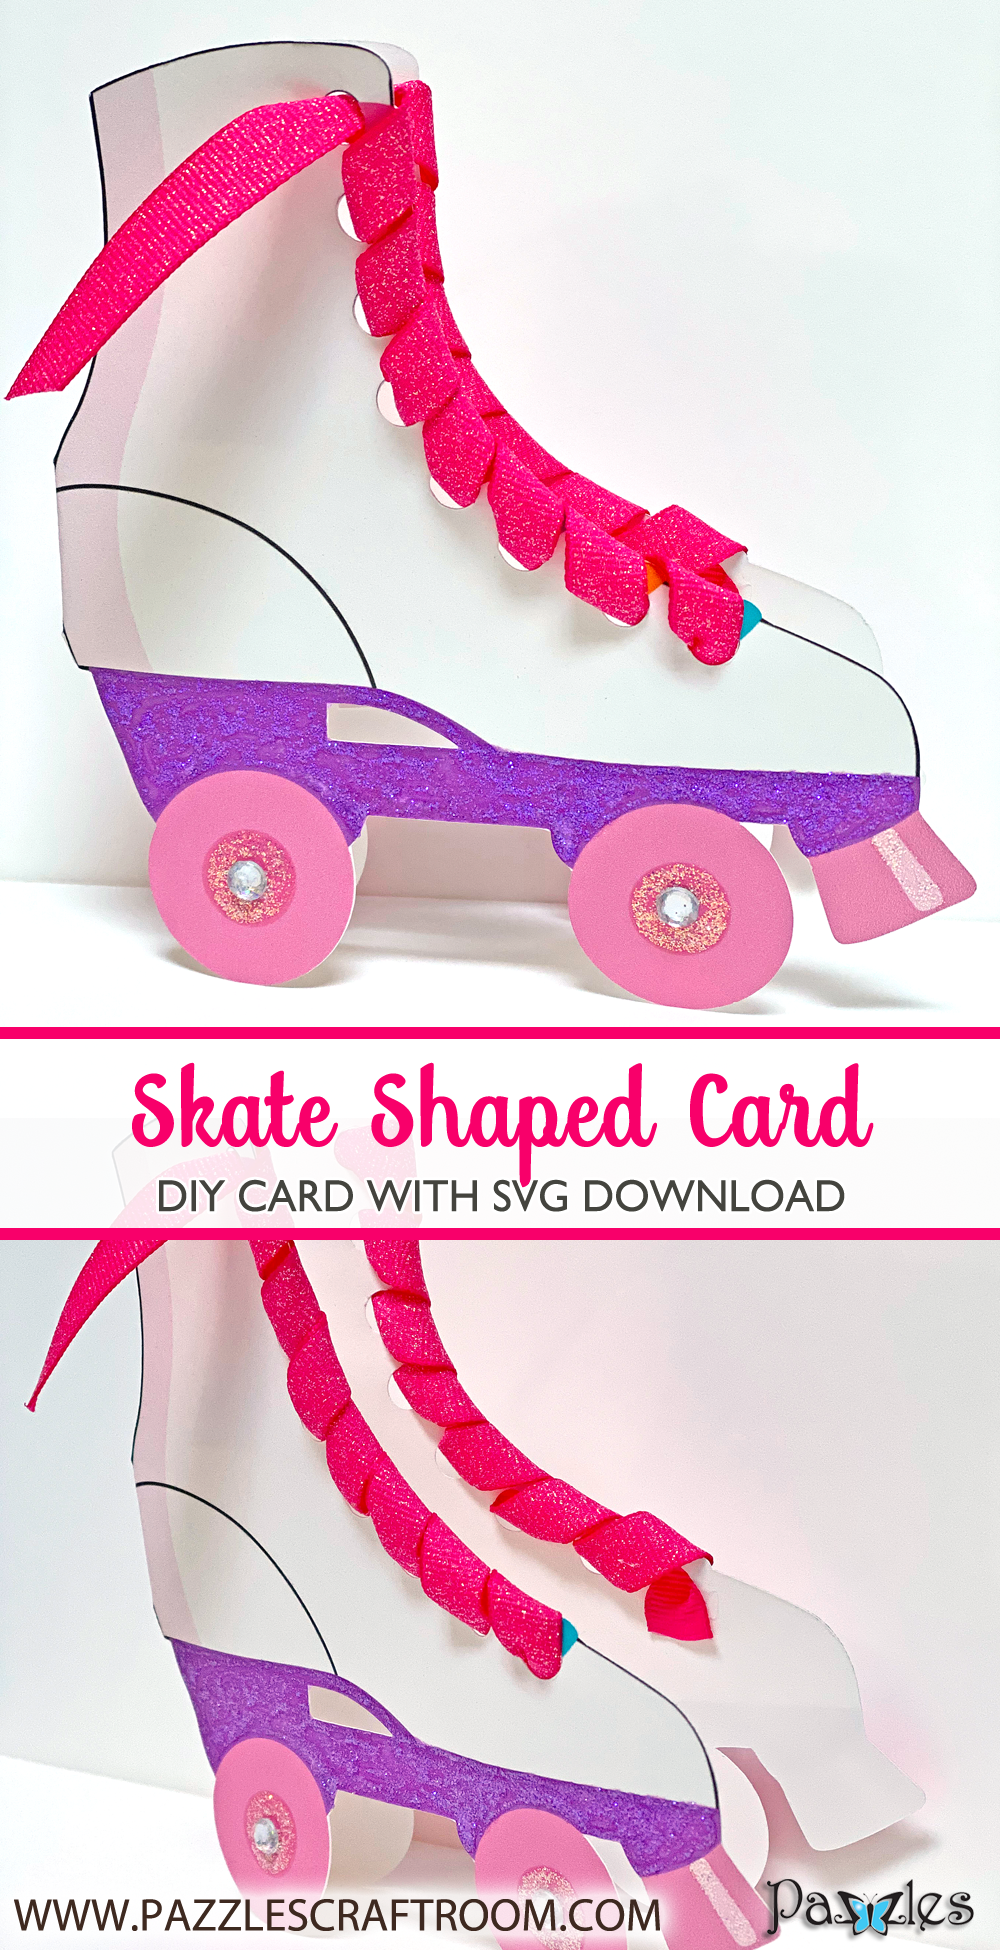 Pazzles DIY Skate Card with instant SVG download. Compatible with all major electronic cutters including Pazzles Inspiration, Cricut, and Silhouette Cameo. Design by Lisa Reyna.